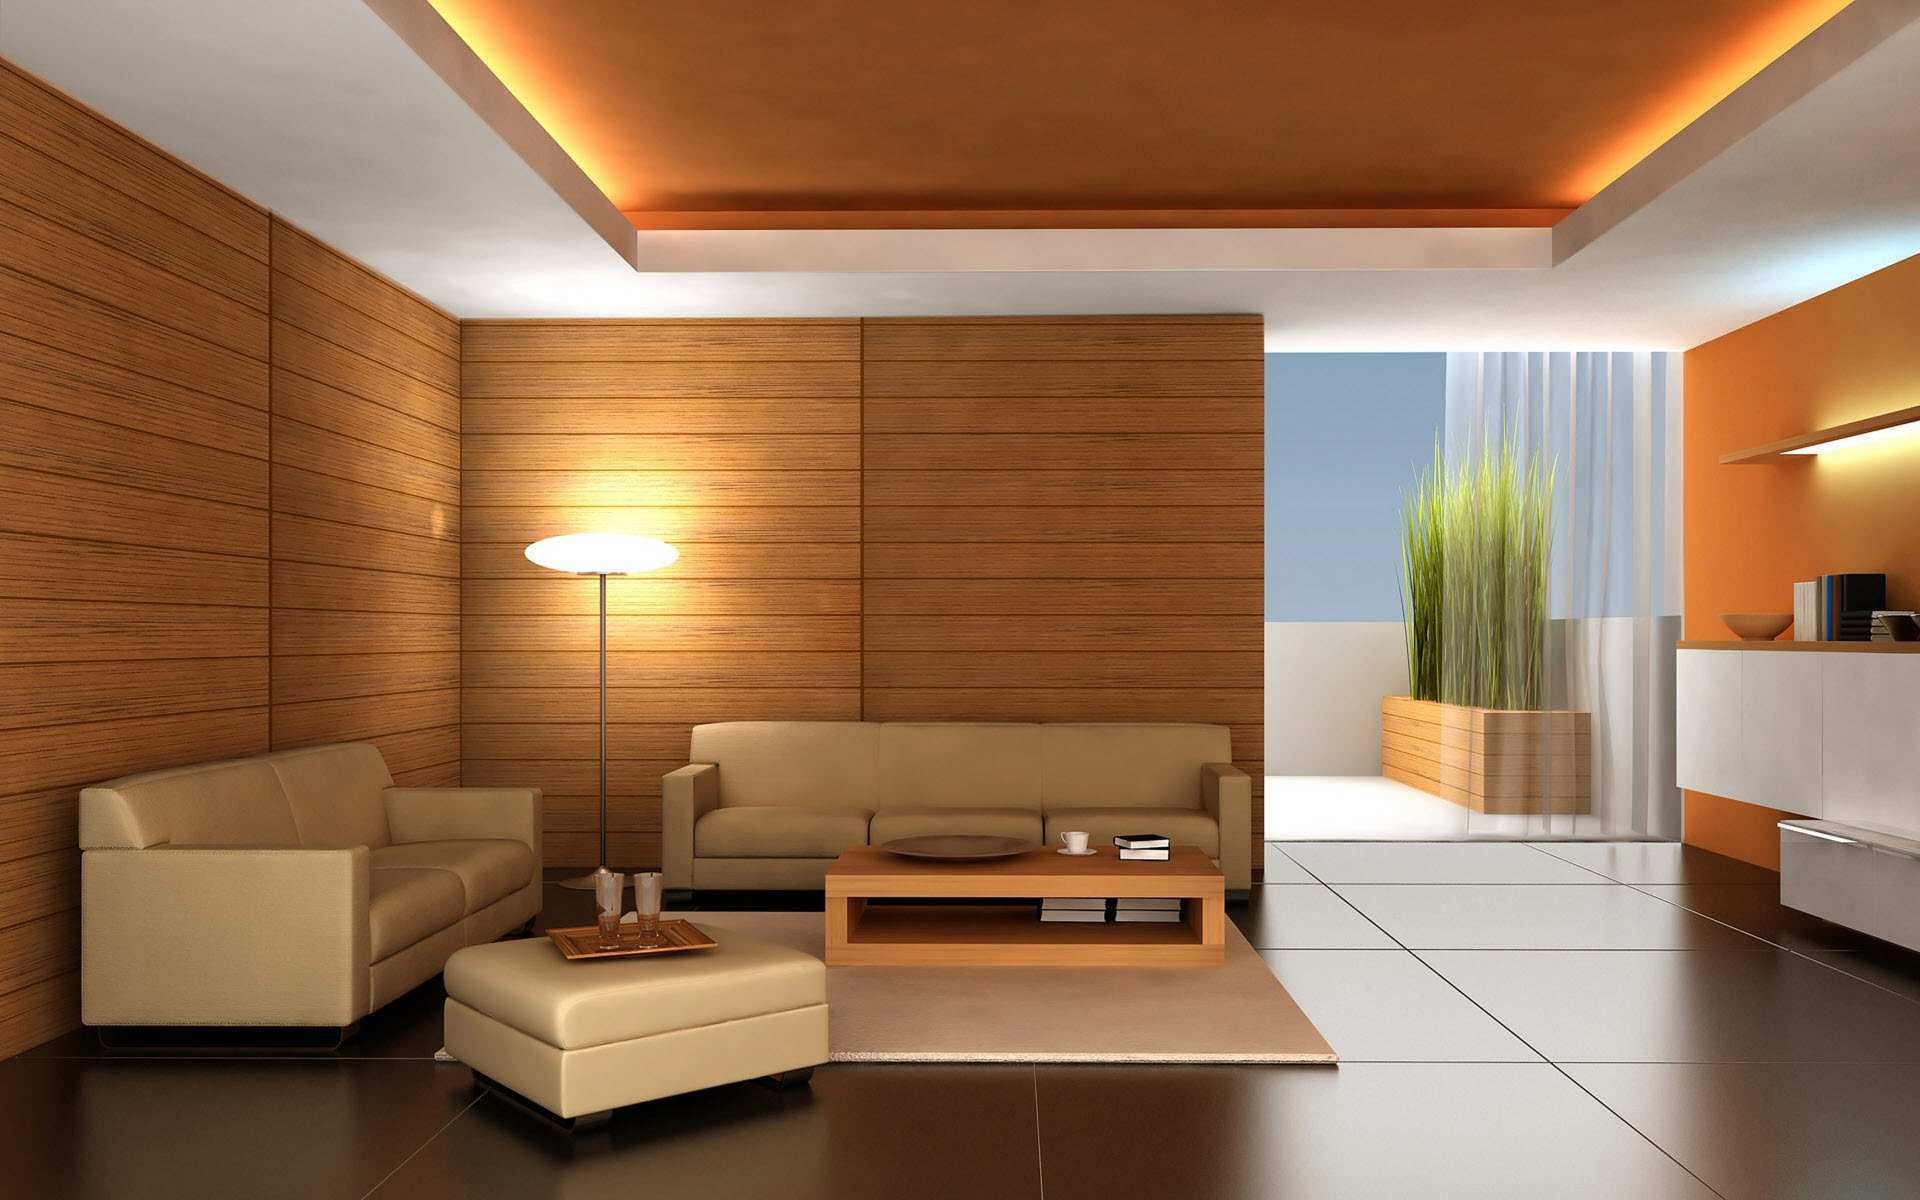 Living Room Design Modern Interesting House Design Interior And Exterior  Home Decor And Interior Review